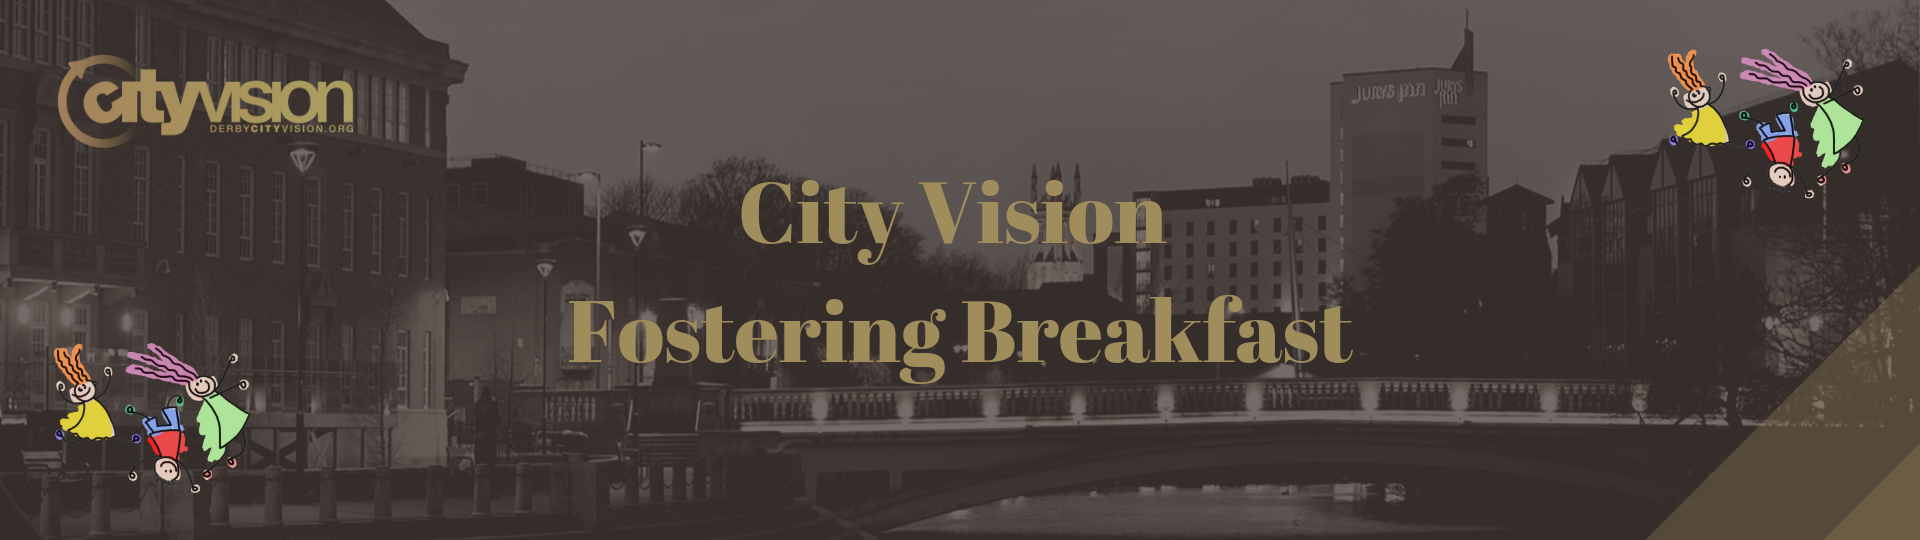 cityvision-fostering-breakfast.png